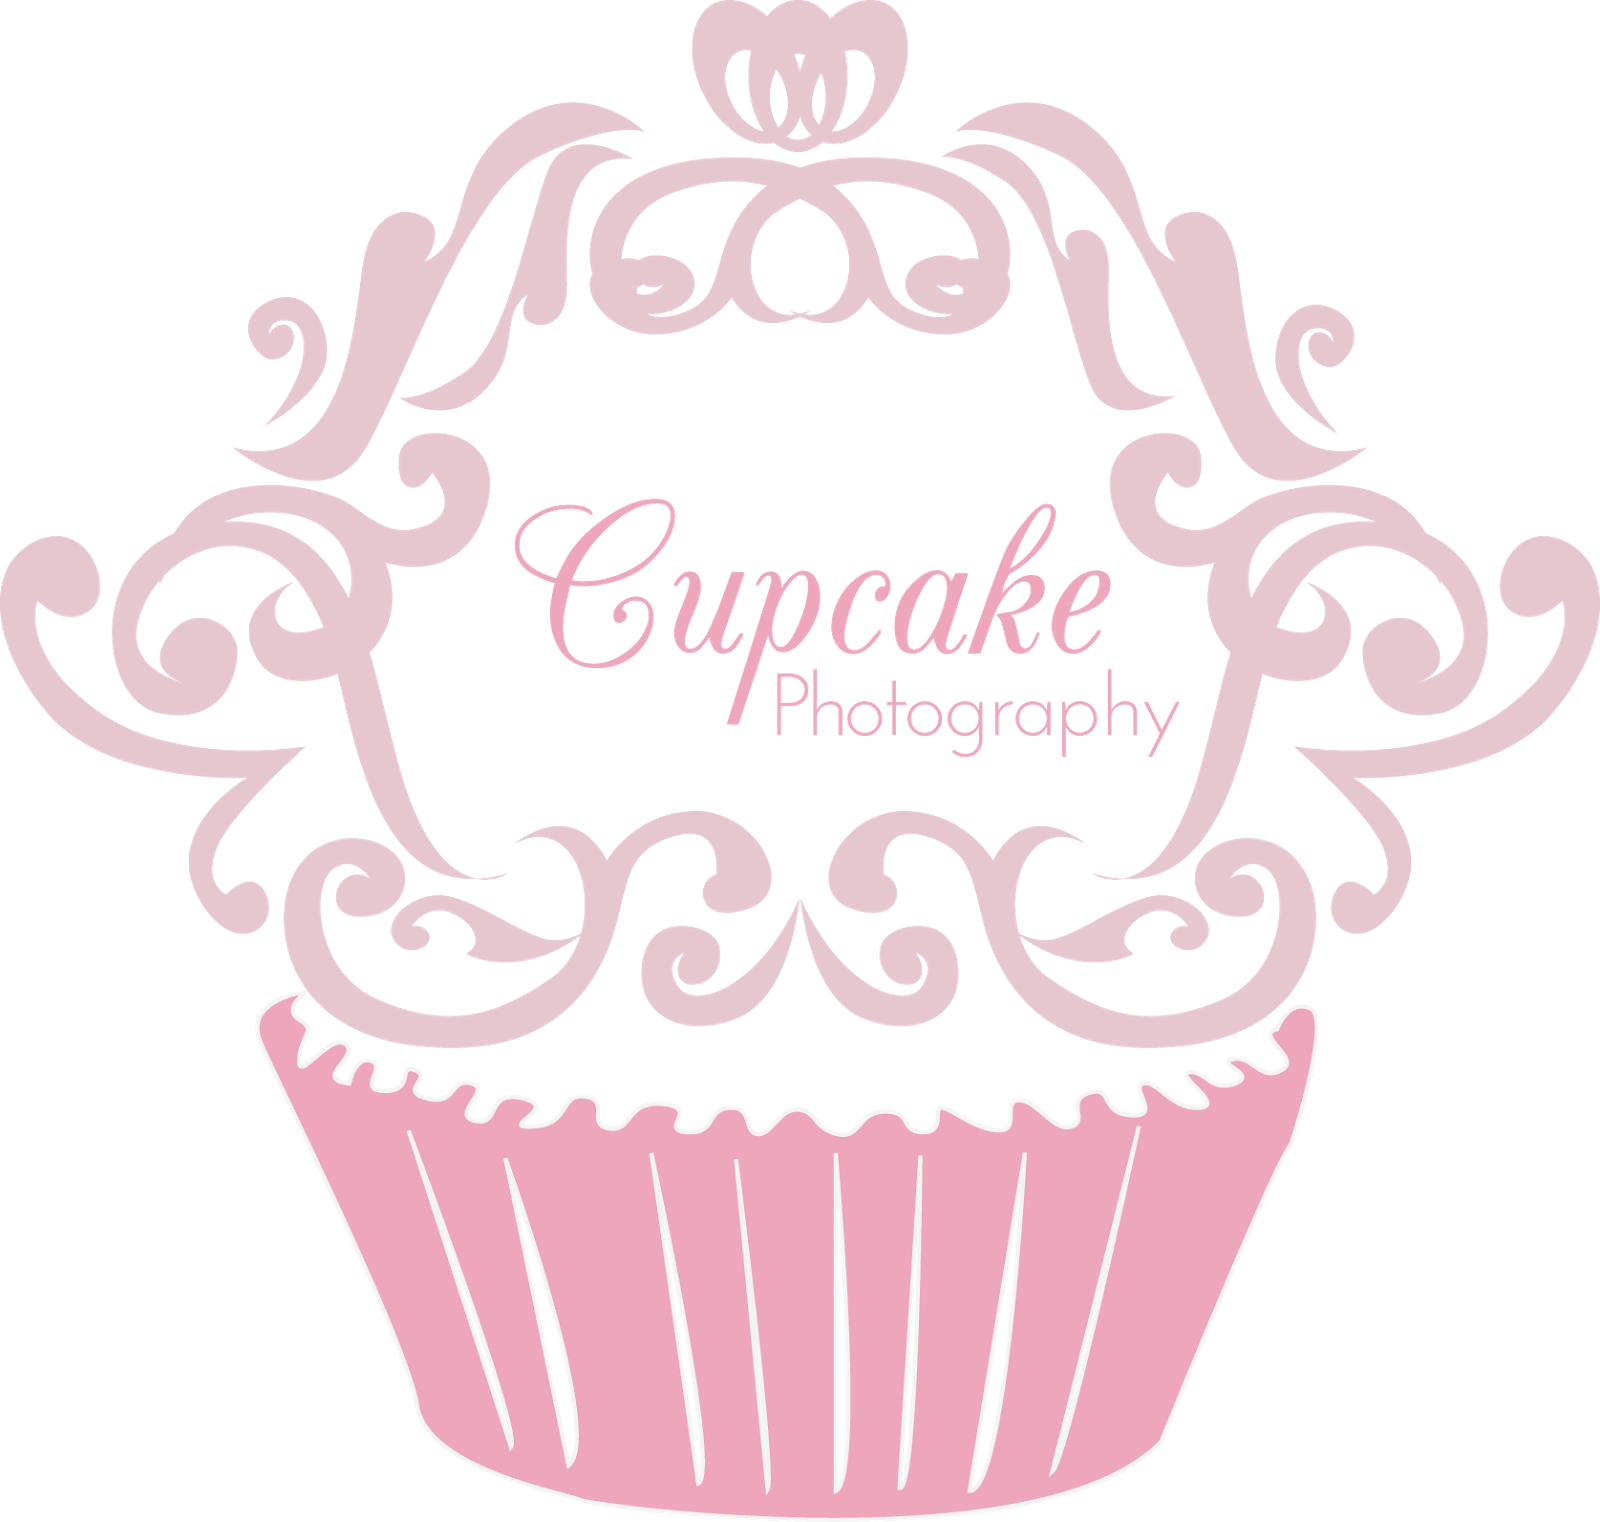 Cute Logo Ideas Cute cupcake logos cute | Cute Designs ...